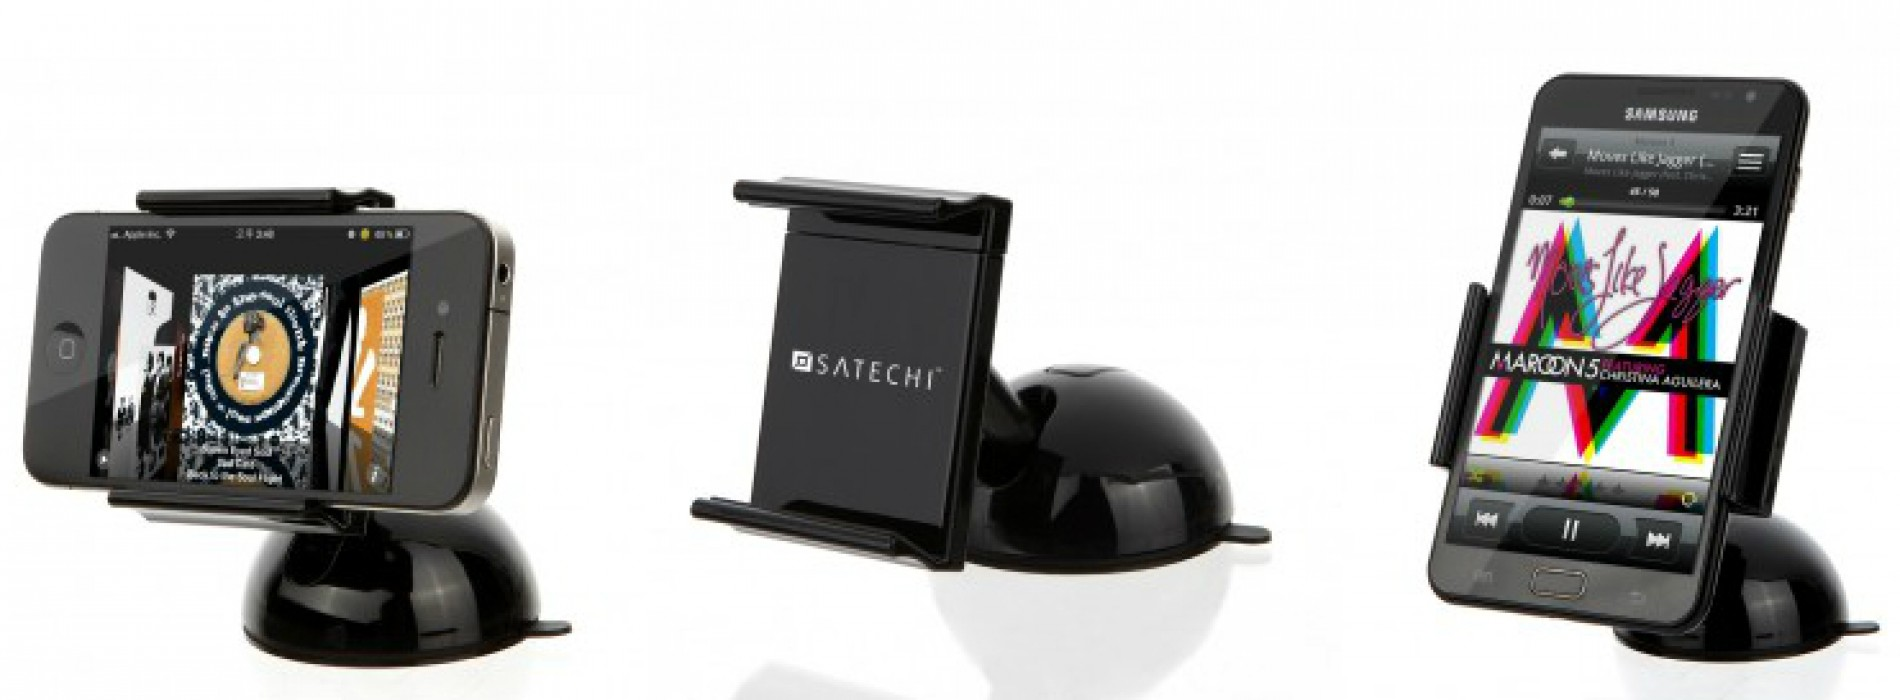 Satechi Universal Smartphone Dashboard Mount review